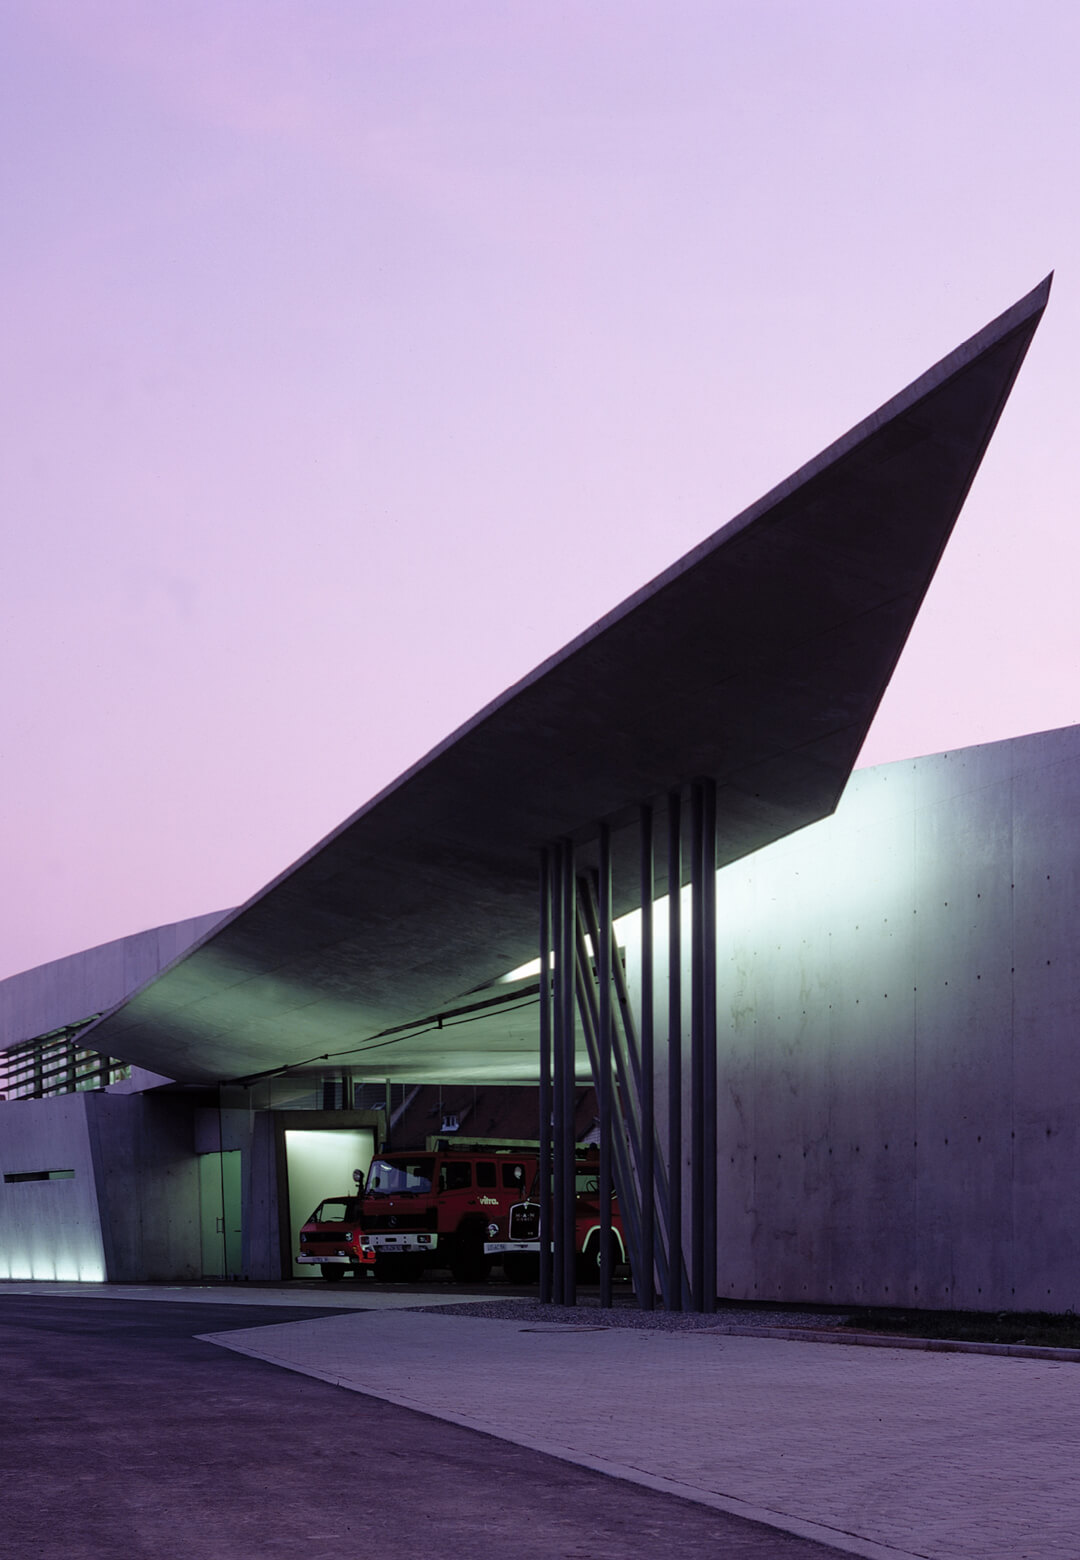 The Vitra Fire Station now serves as an exhibition space| | Vitra Fire Station | Zaha Hadid Architects | STIRworld